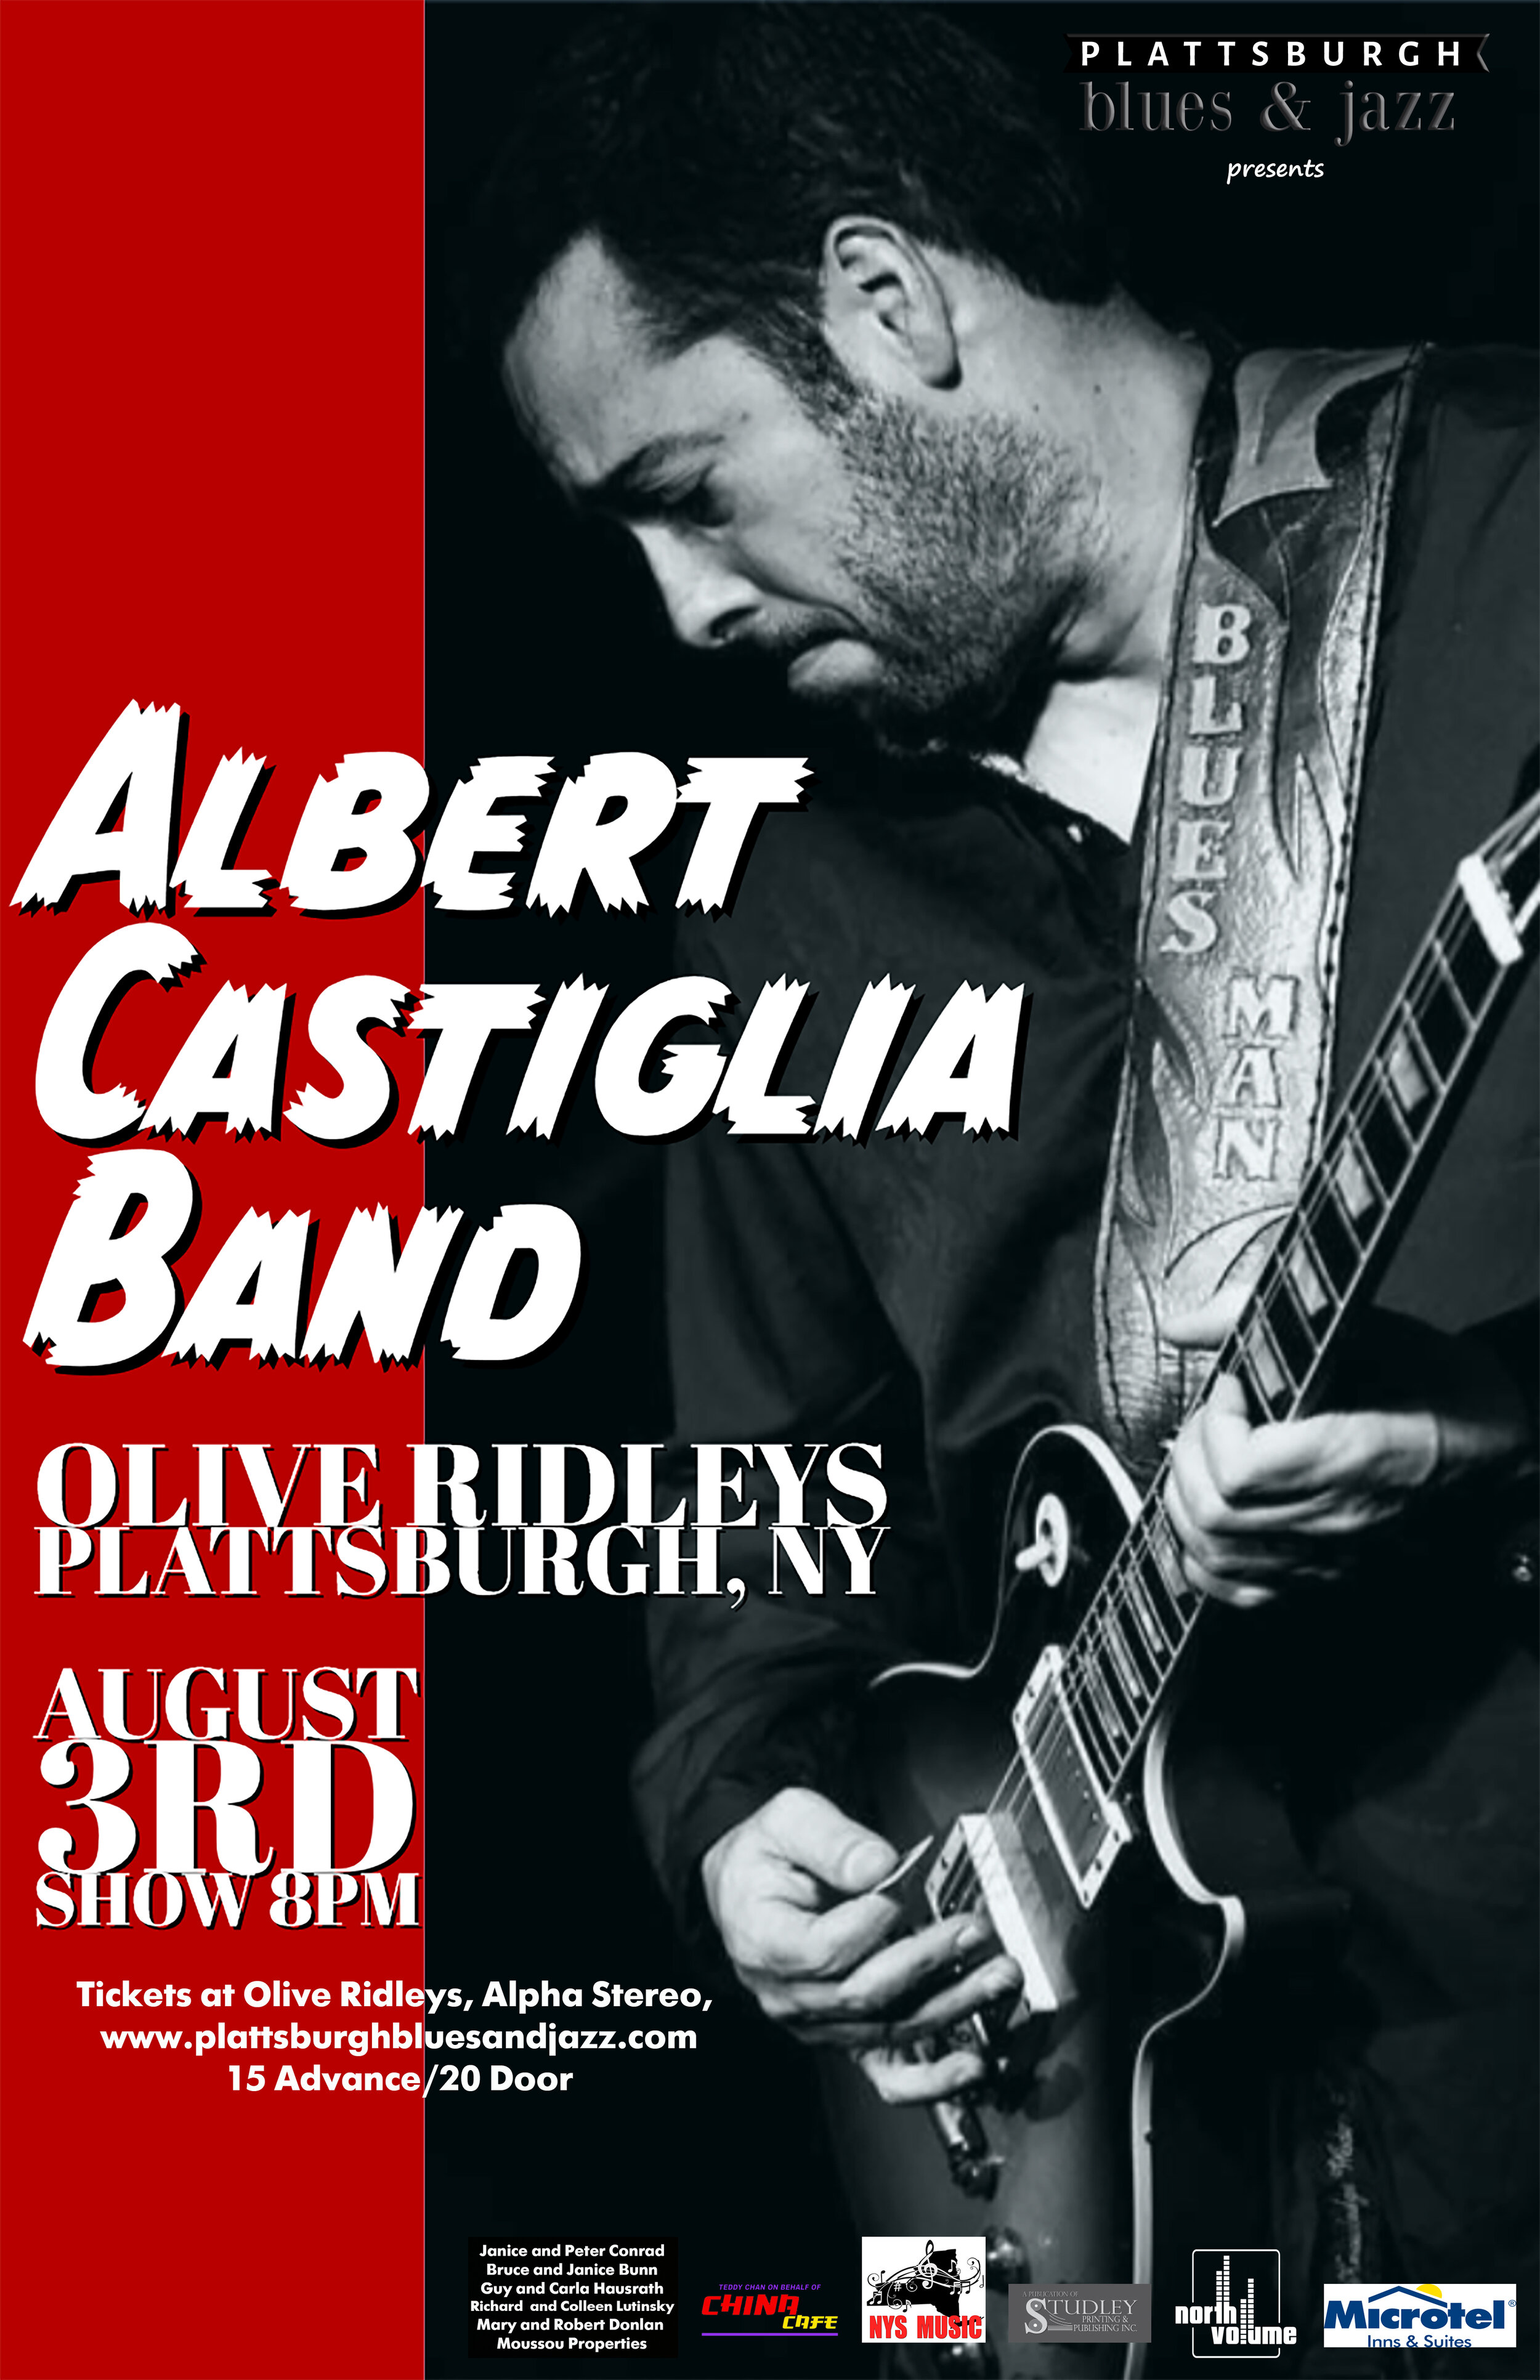 Albert Castliglia Band.jpg